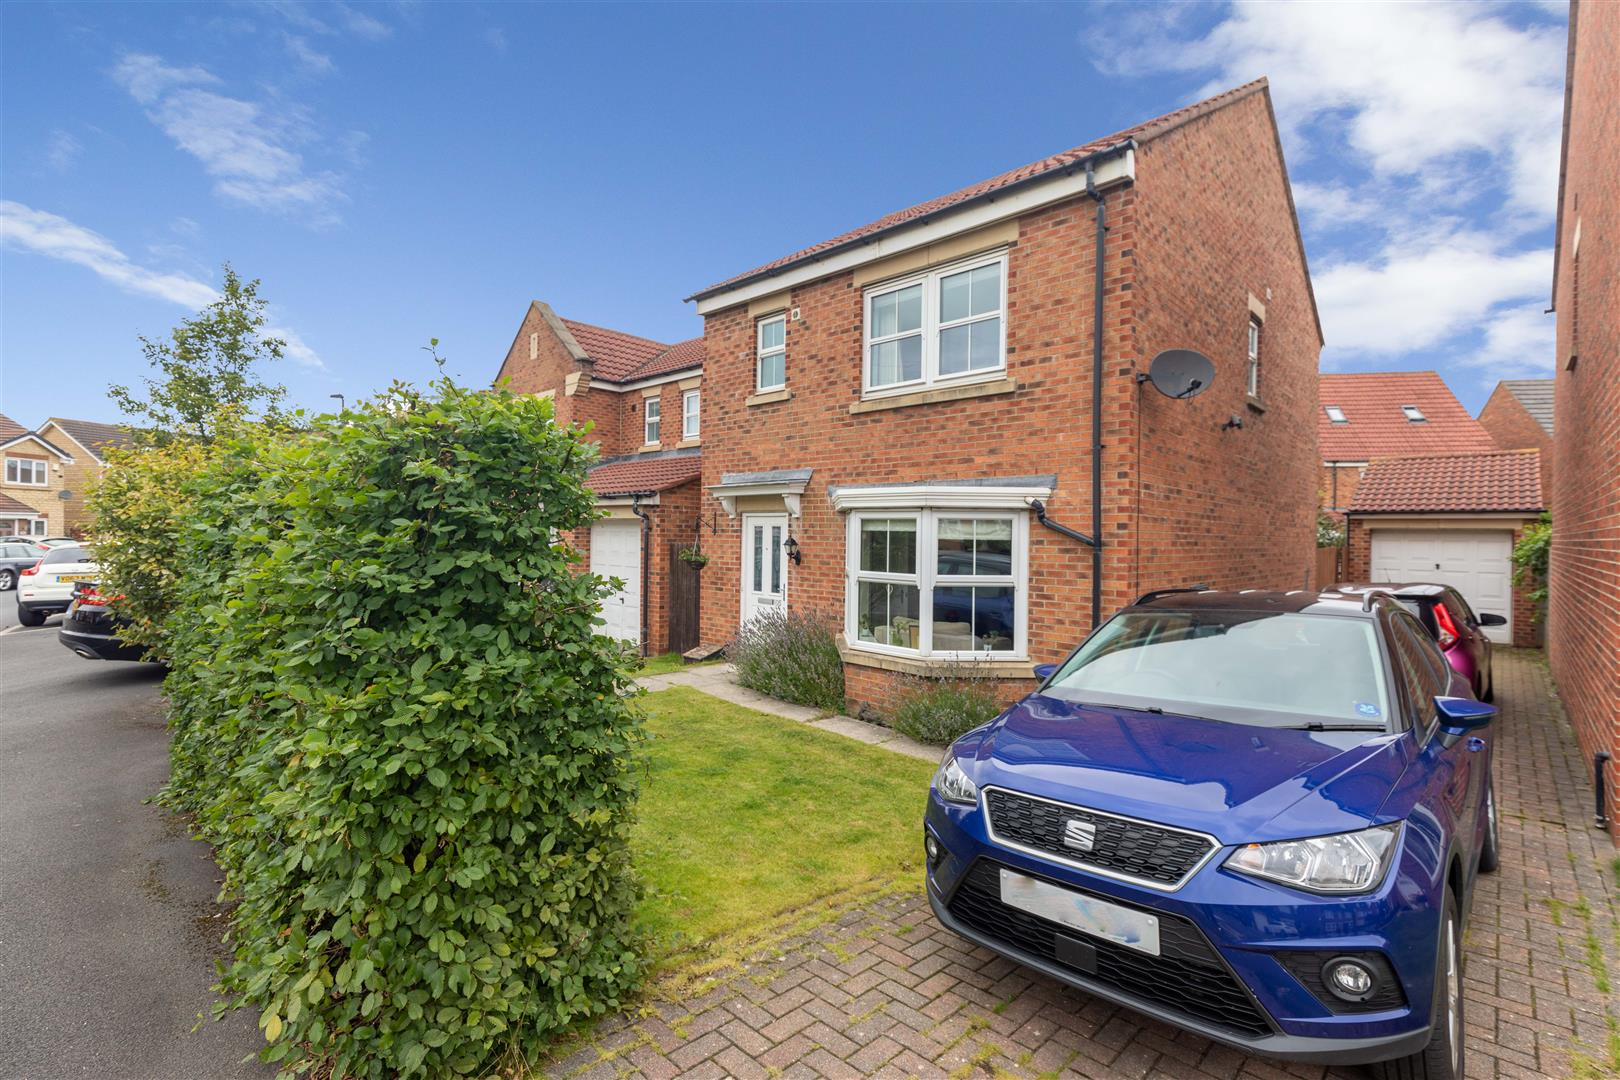 3 bed detached house for sale in Newcastle Upon Tyne, NE27 0BD - Property Image 1